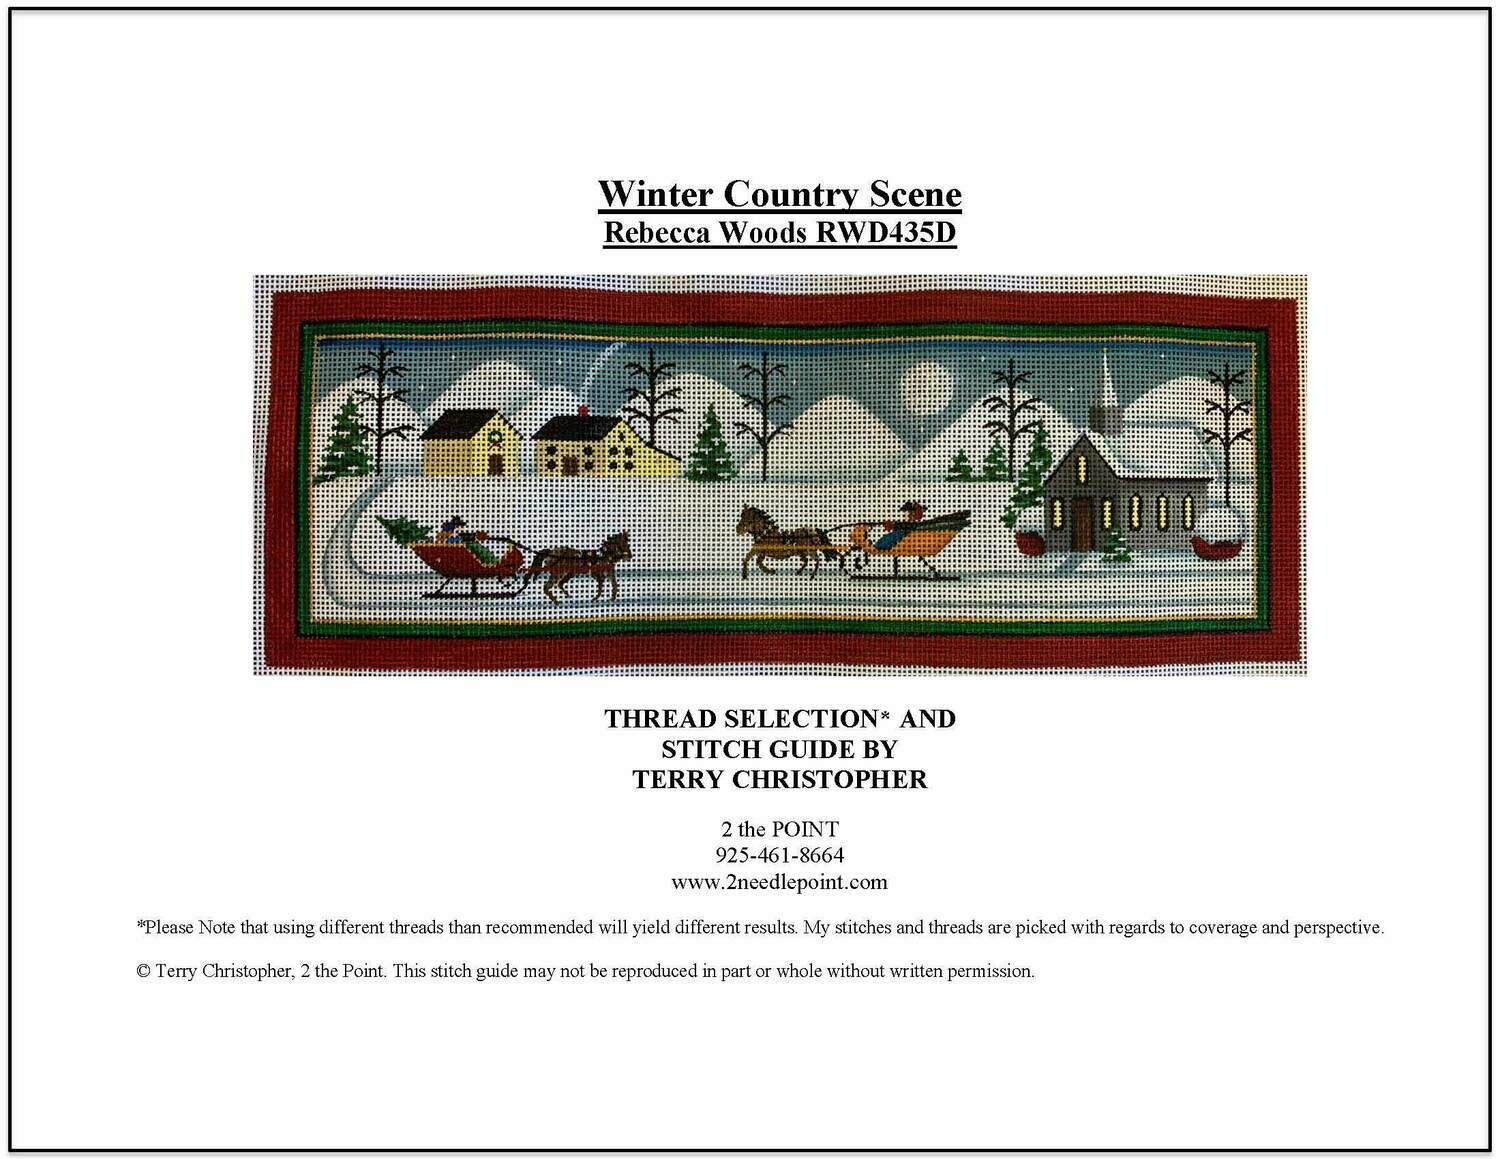 Rebecca Woods, Winter Country Scene RWD435D